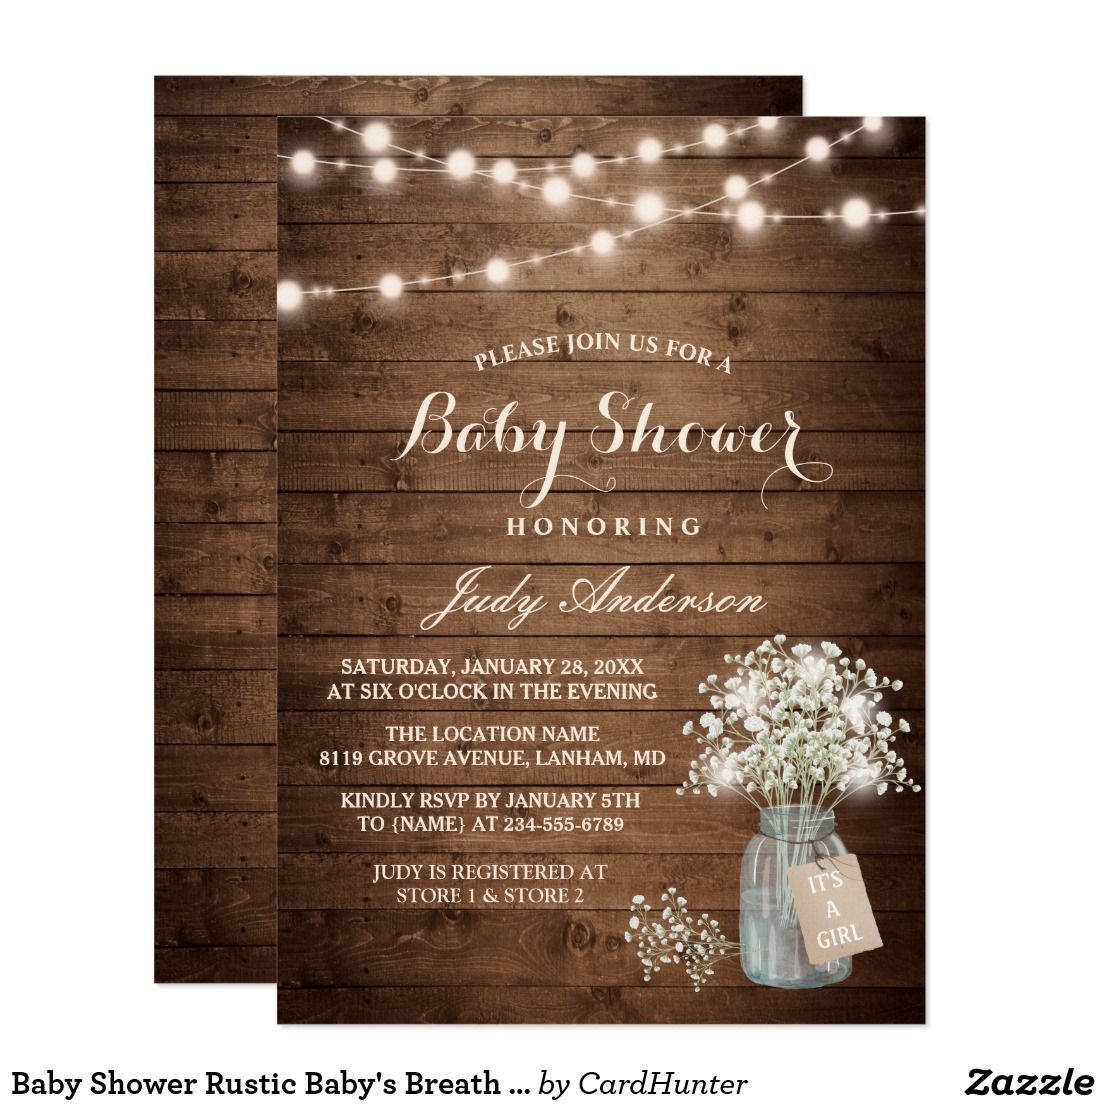 baby shower rustic baby's breath floral mason jar card | rustic baby, Baby shower invitations